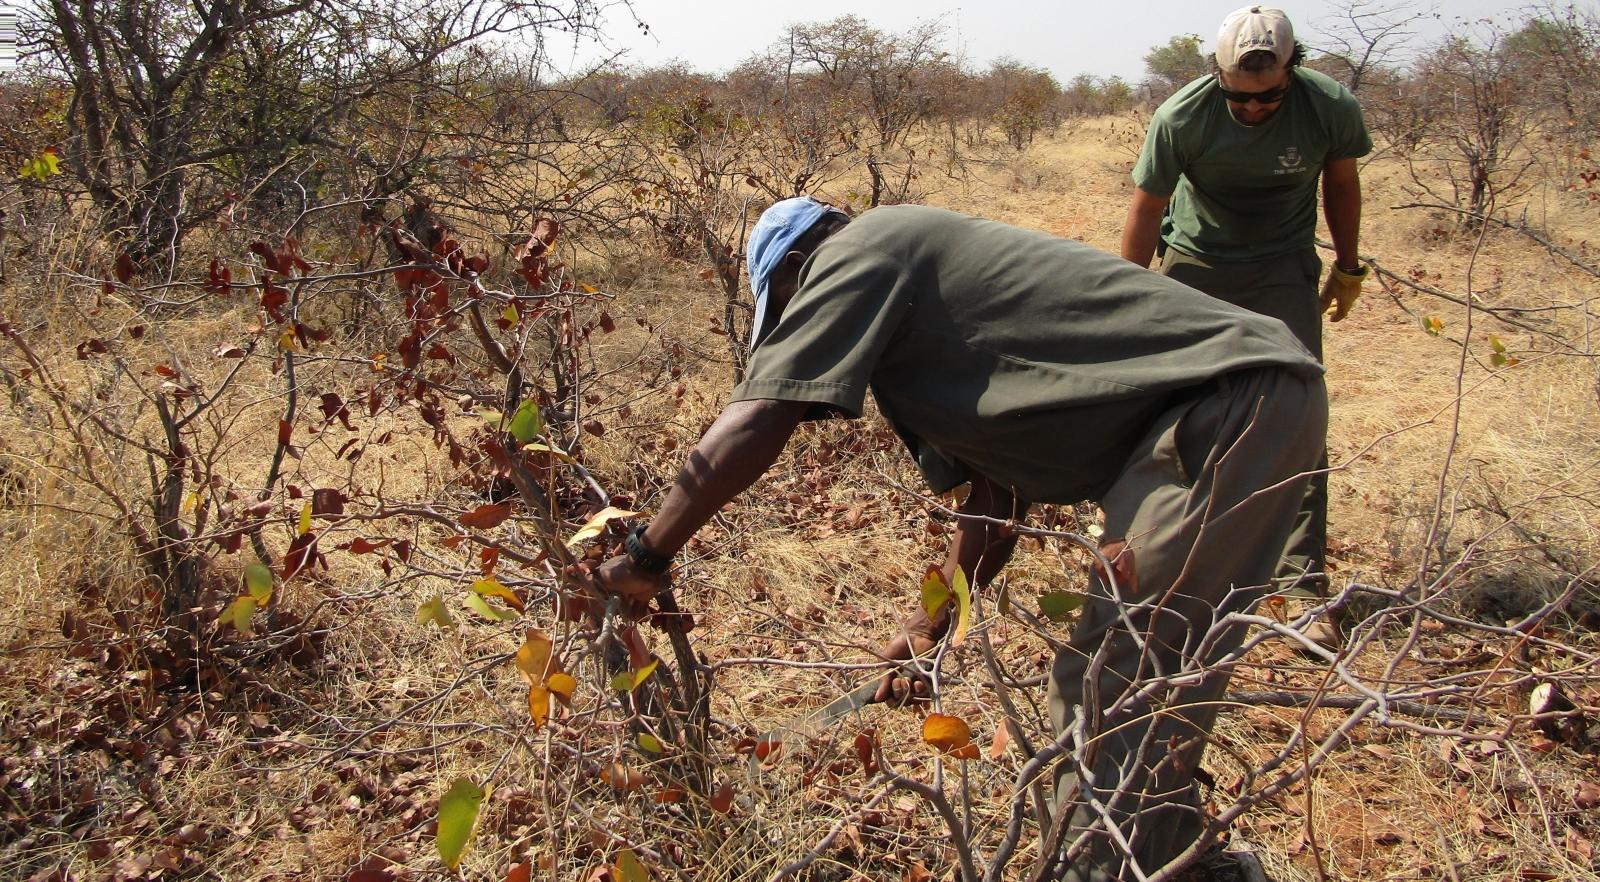 Volunteers discarding traps laid by poachers in South Africa